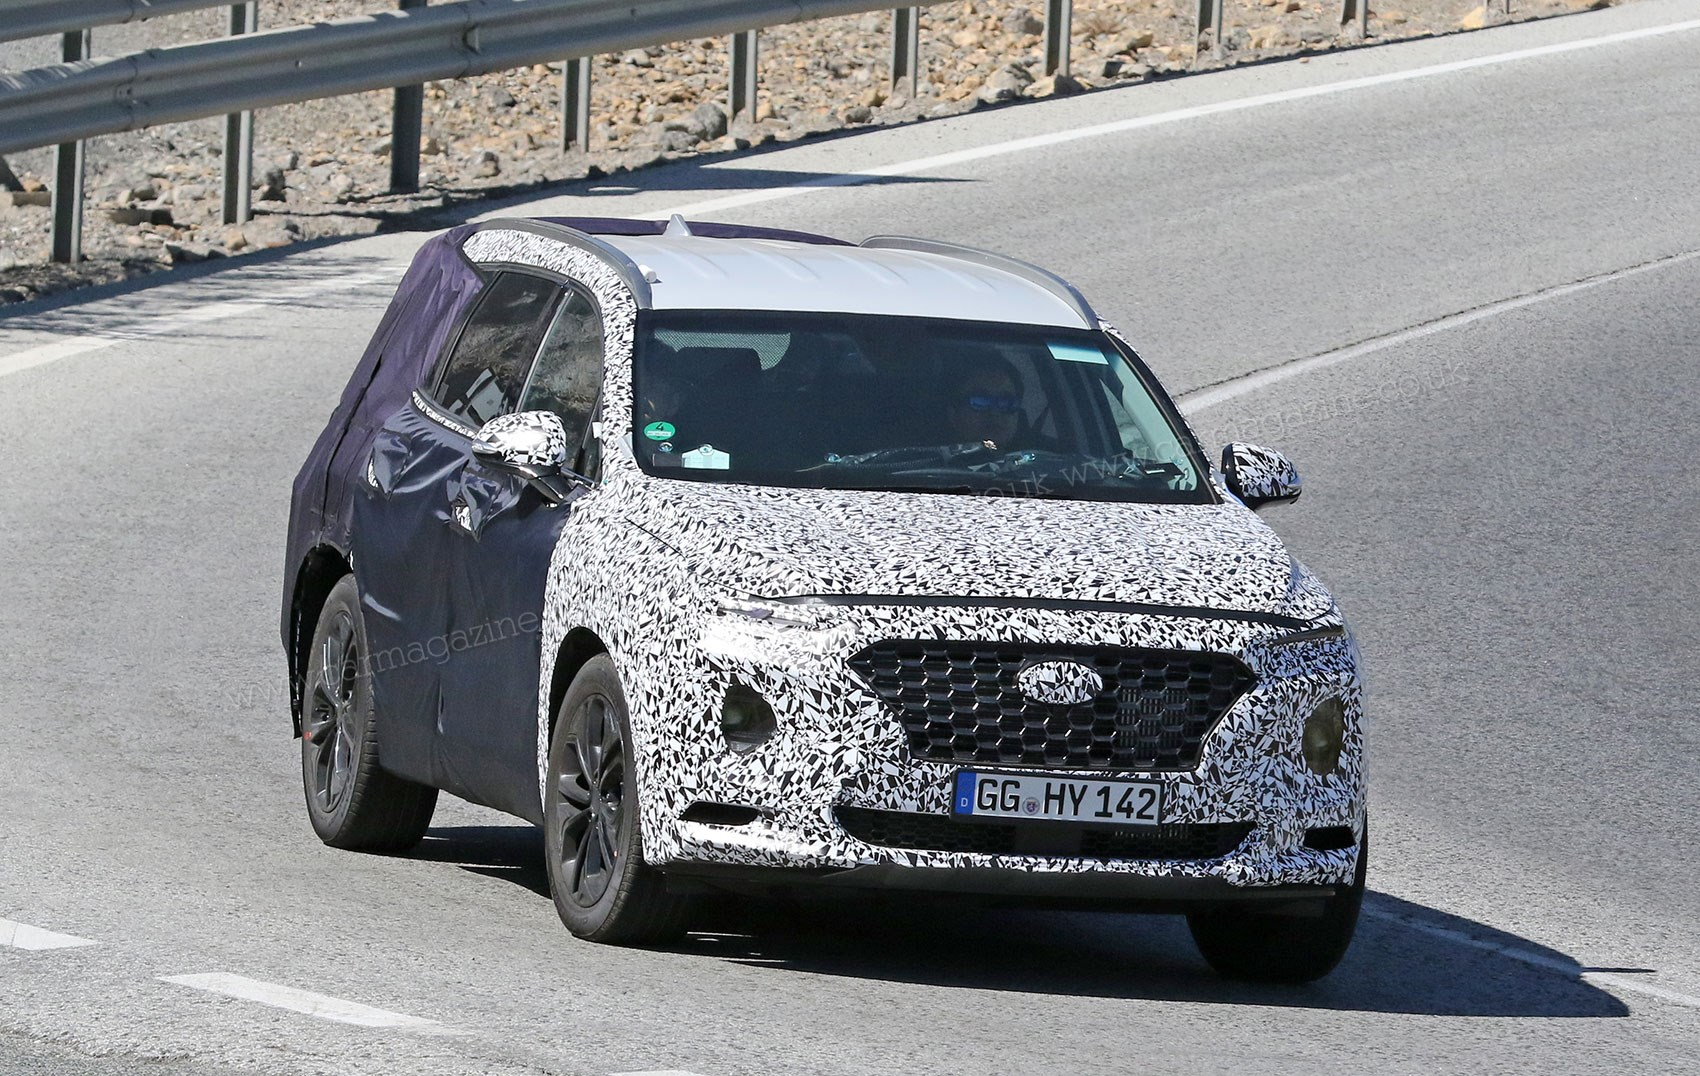 New 2018 Hyundai Santa Fe spy photos specs prices | CAR ...